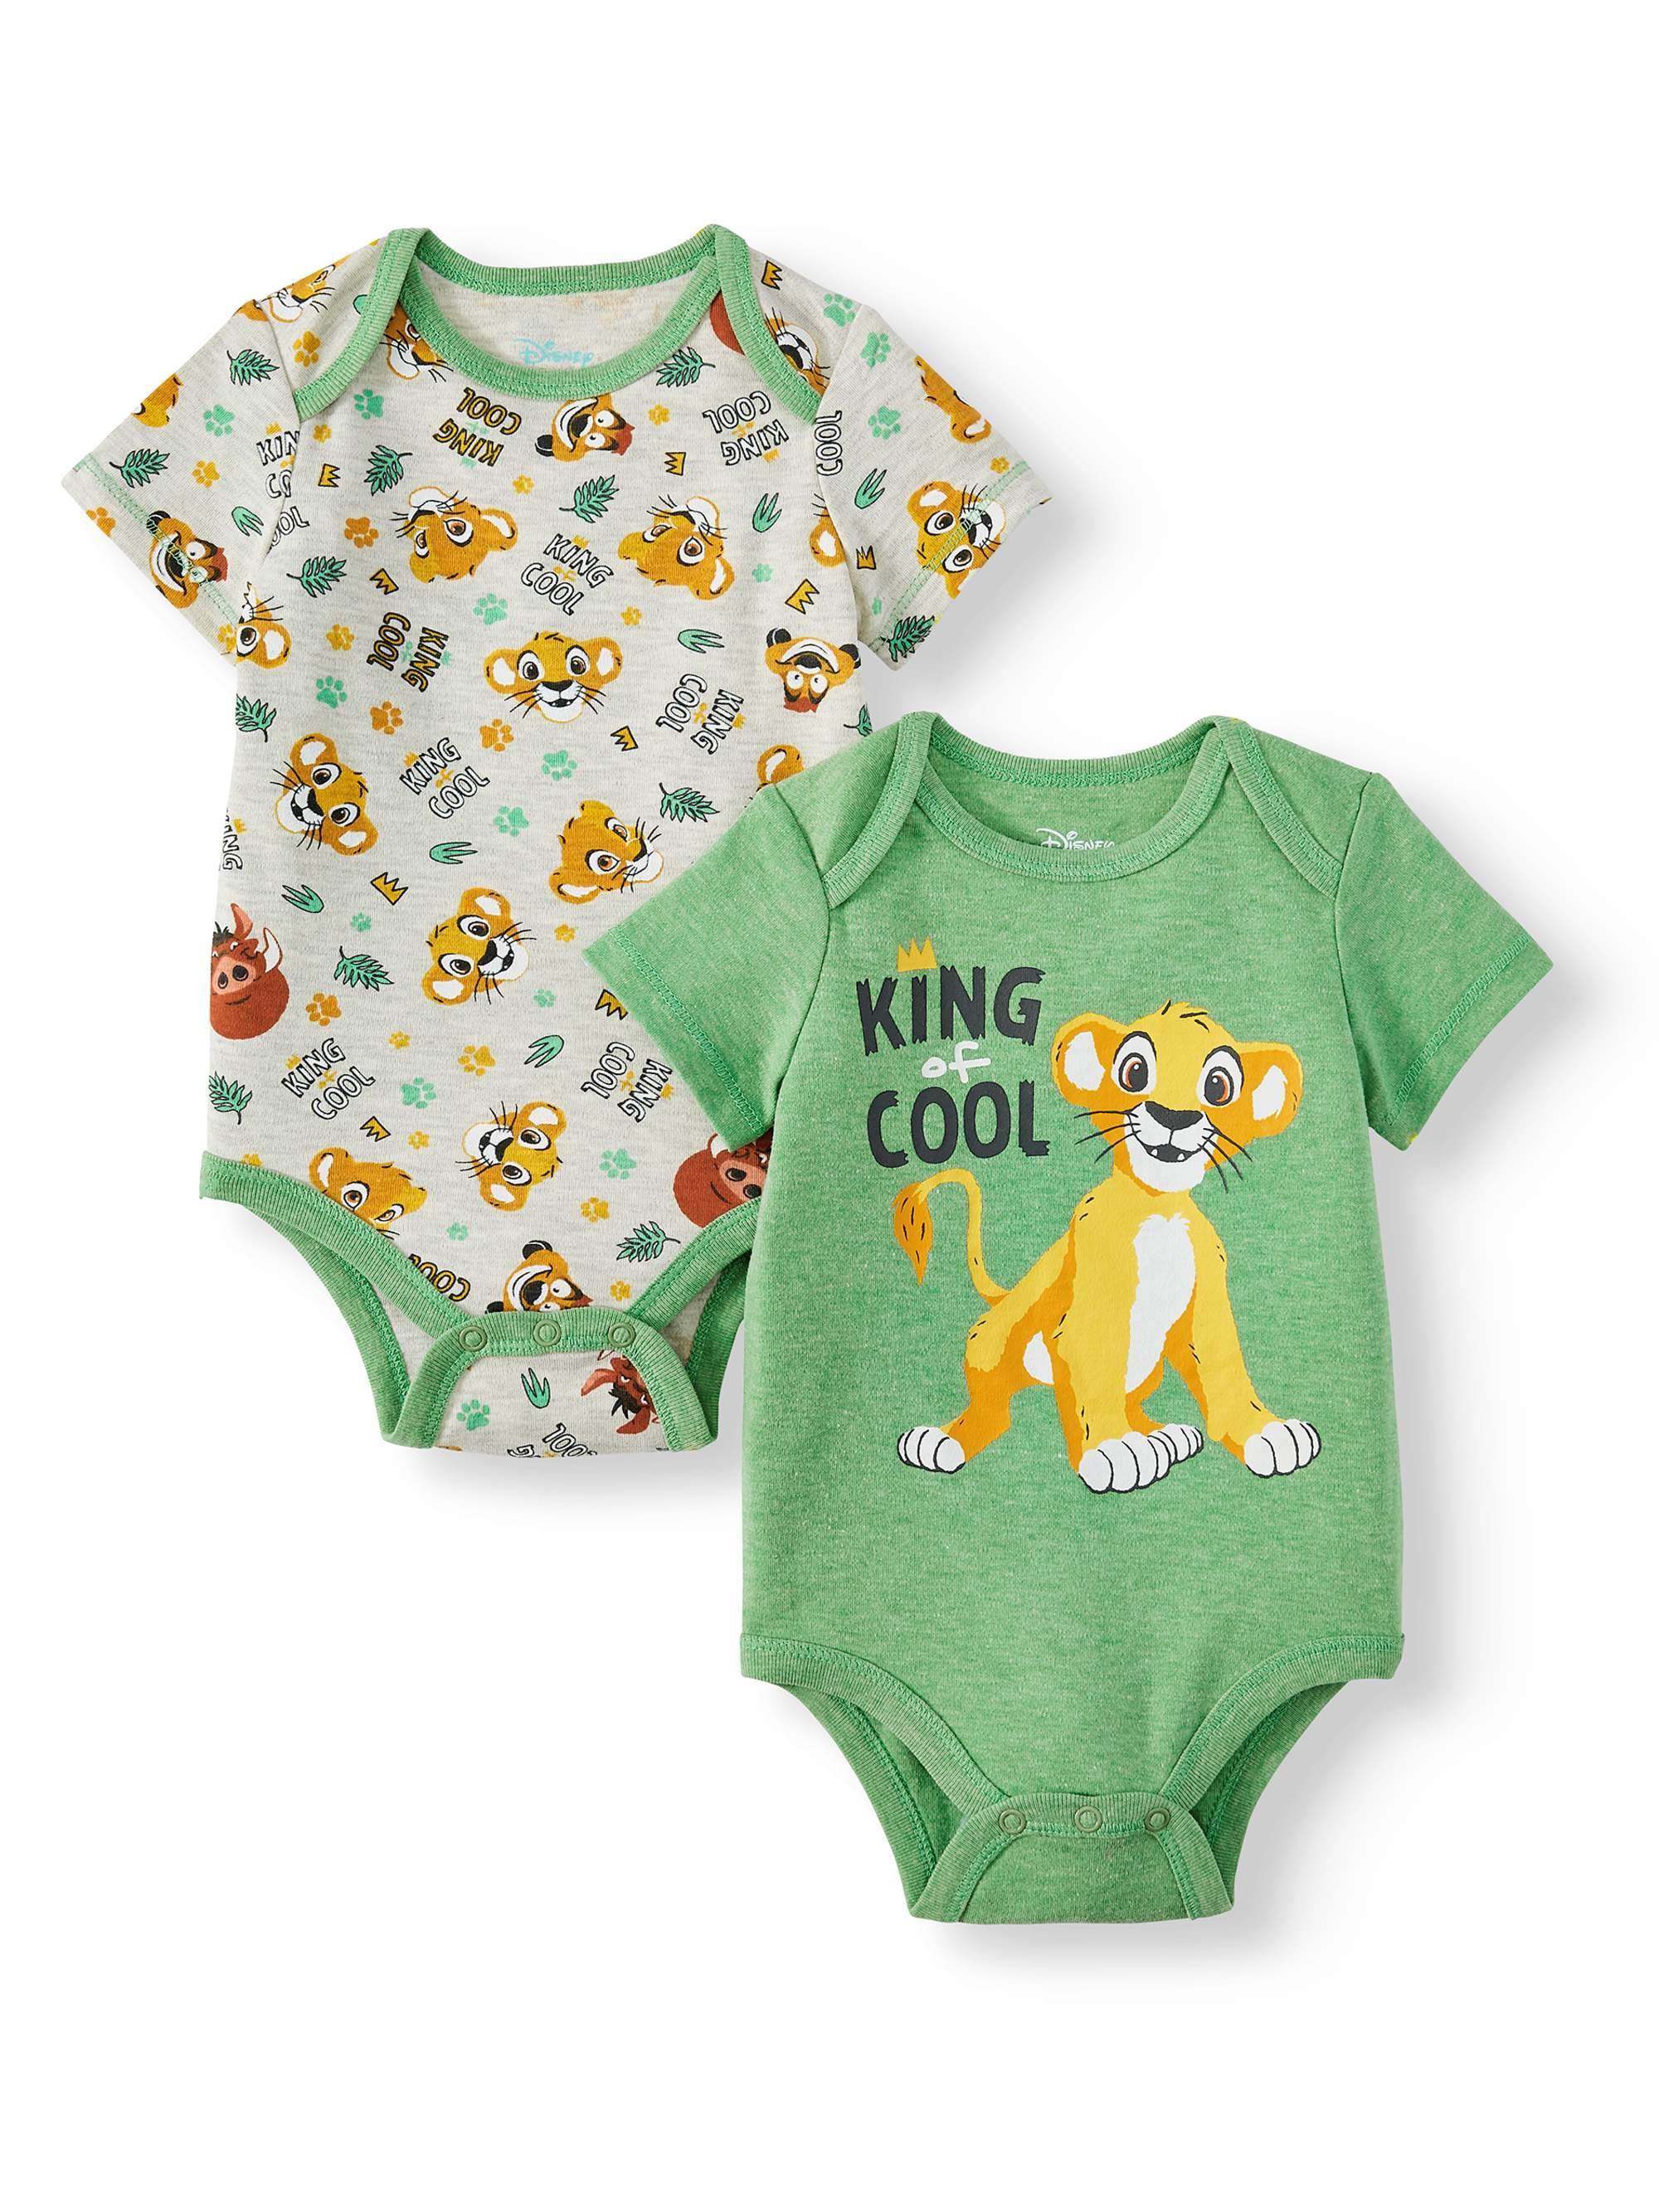 The Lion King 2-Pack Creeper Bodysuit King of Cool Set for Babies 0-3 Months